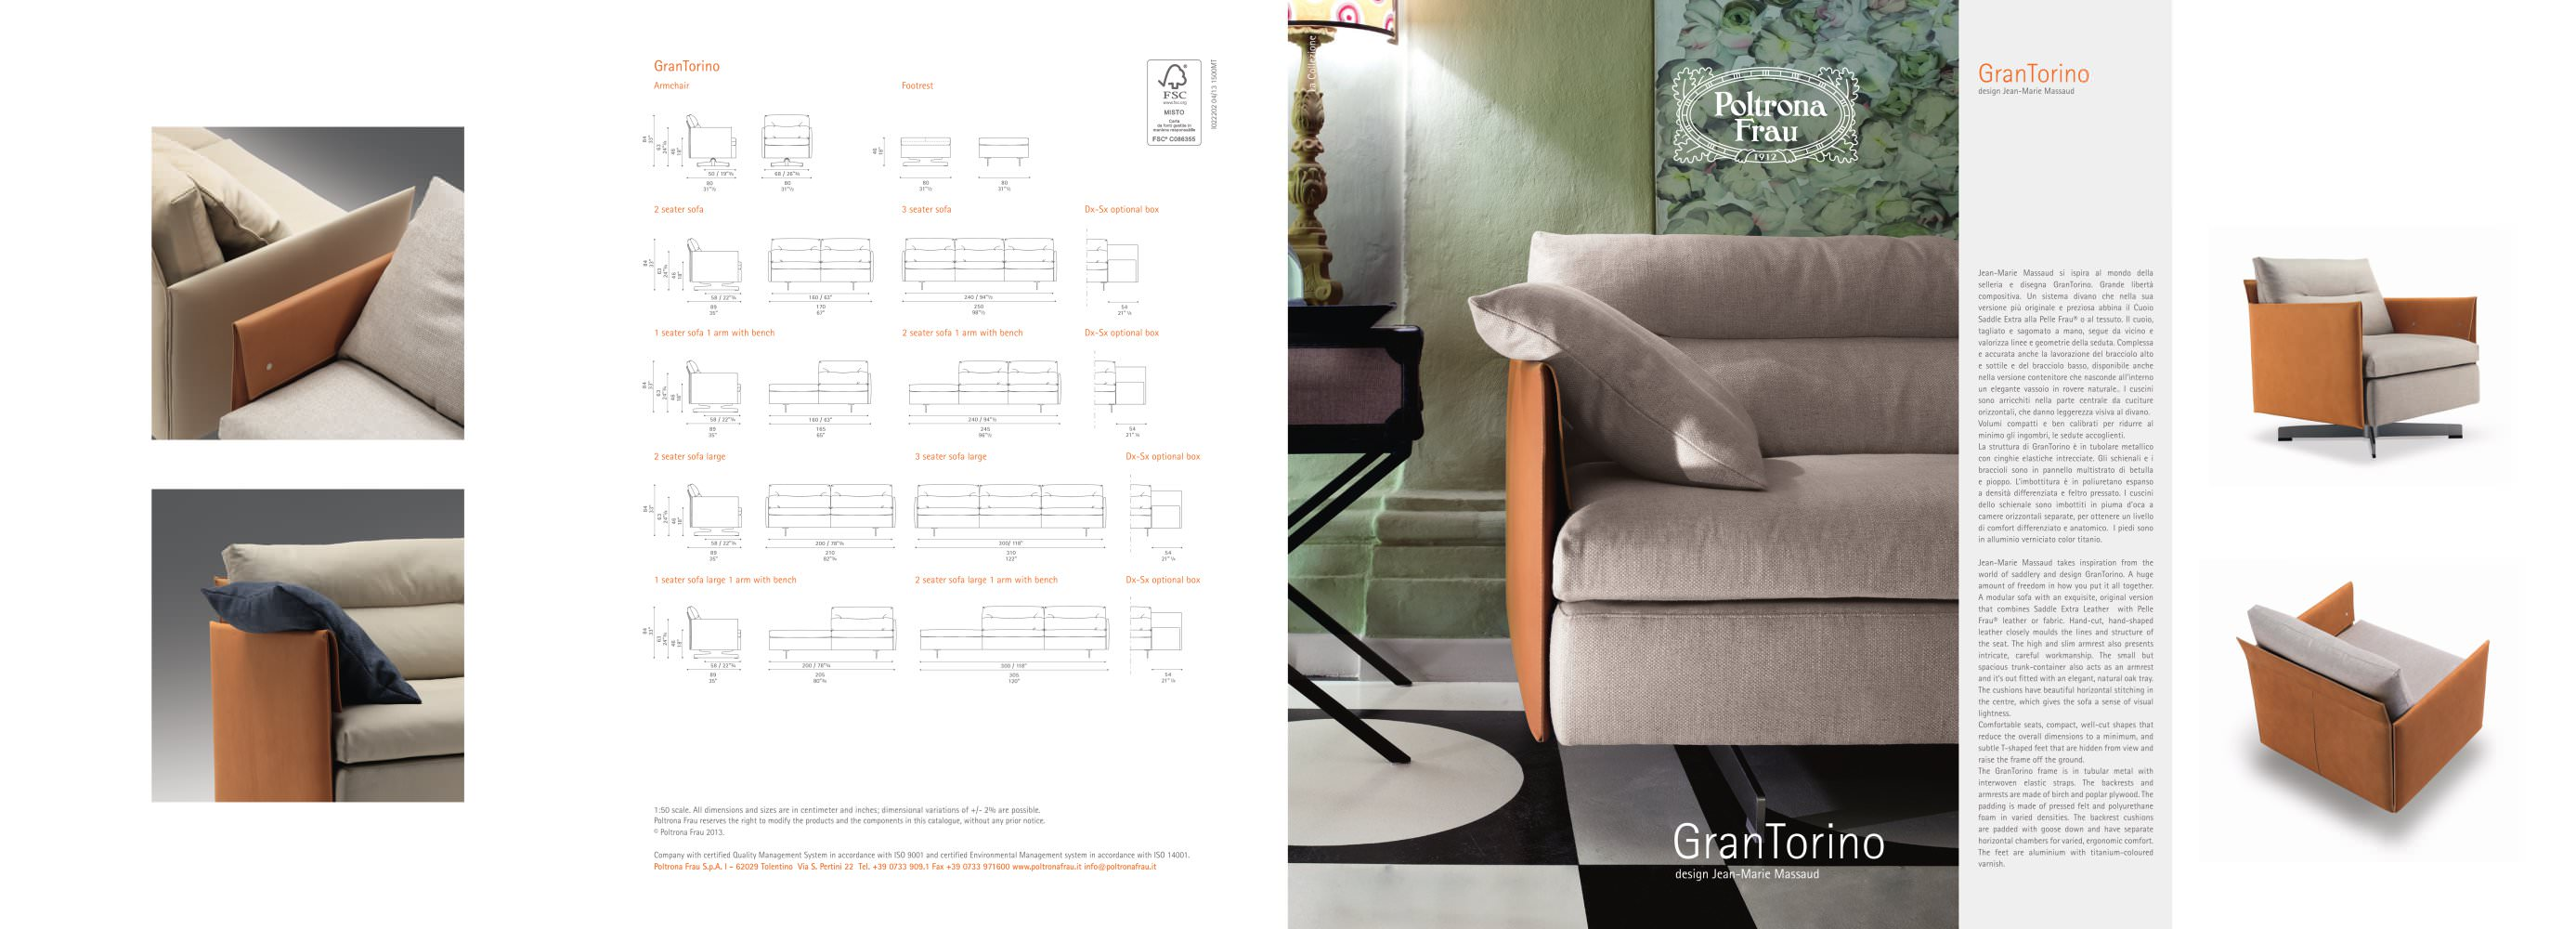 GranTorino - POLTRONA FRAU - PDF Catalogues | Documentation | Brochures